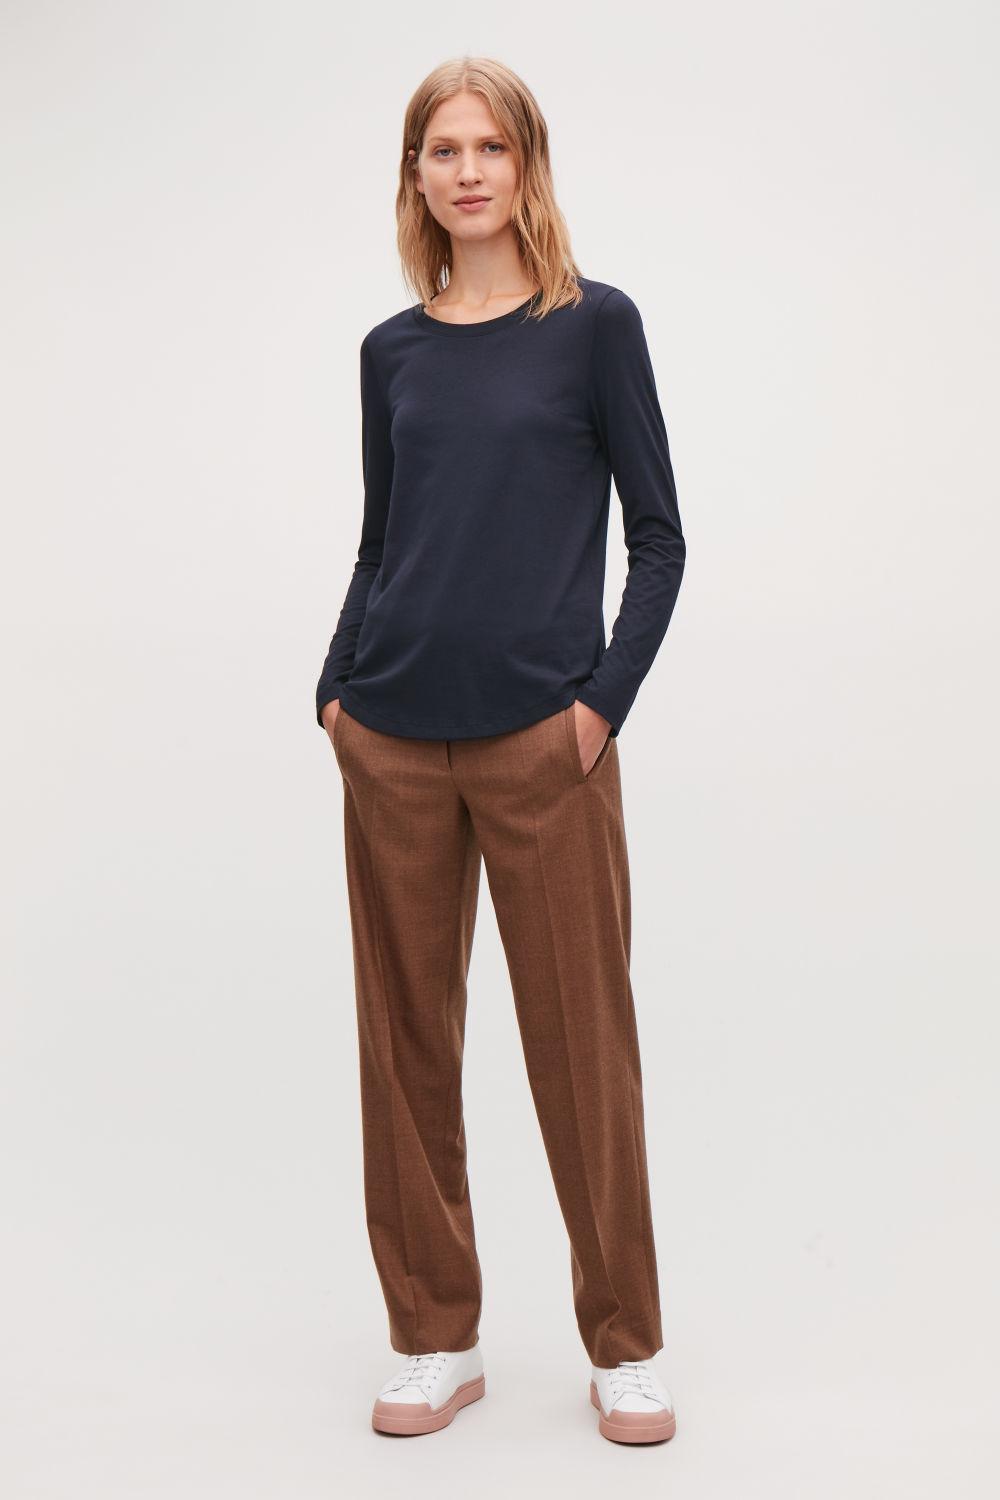 COTTON LONG-SLEEVED TOP